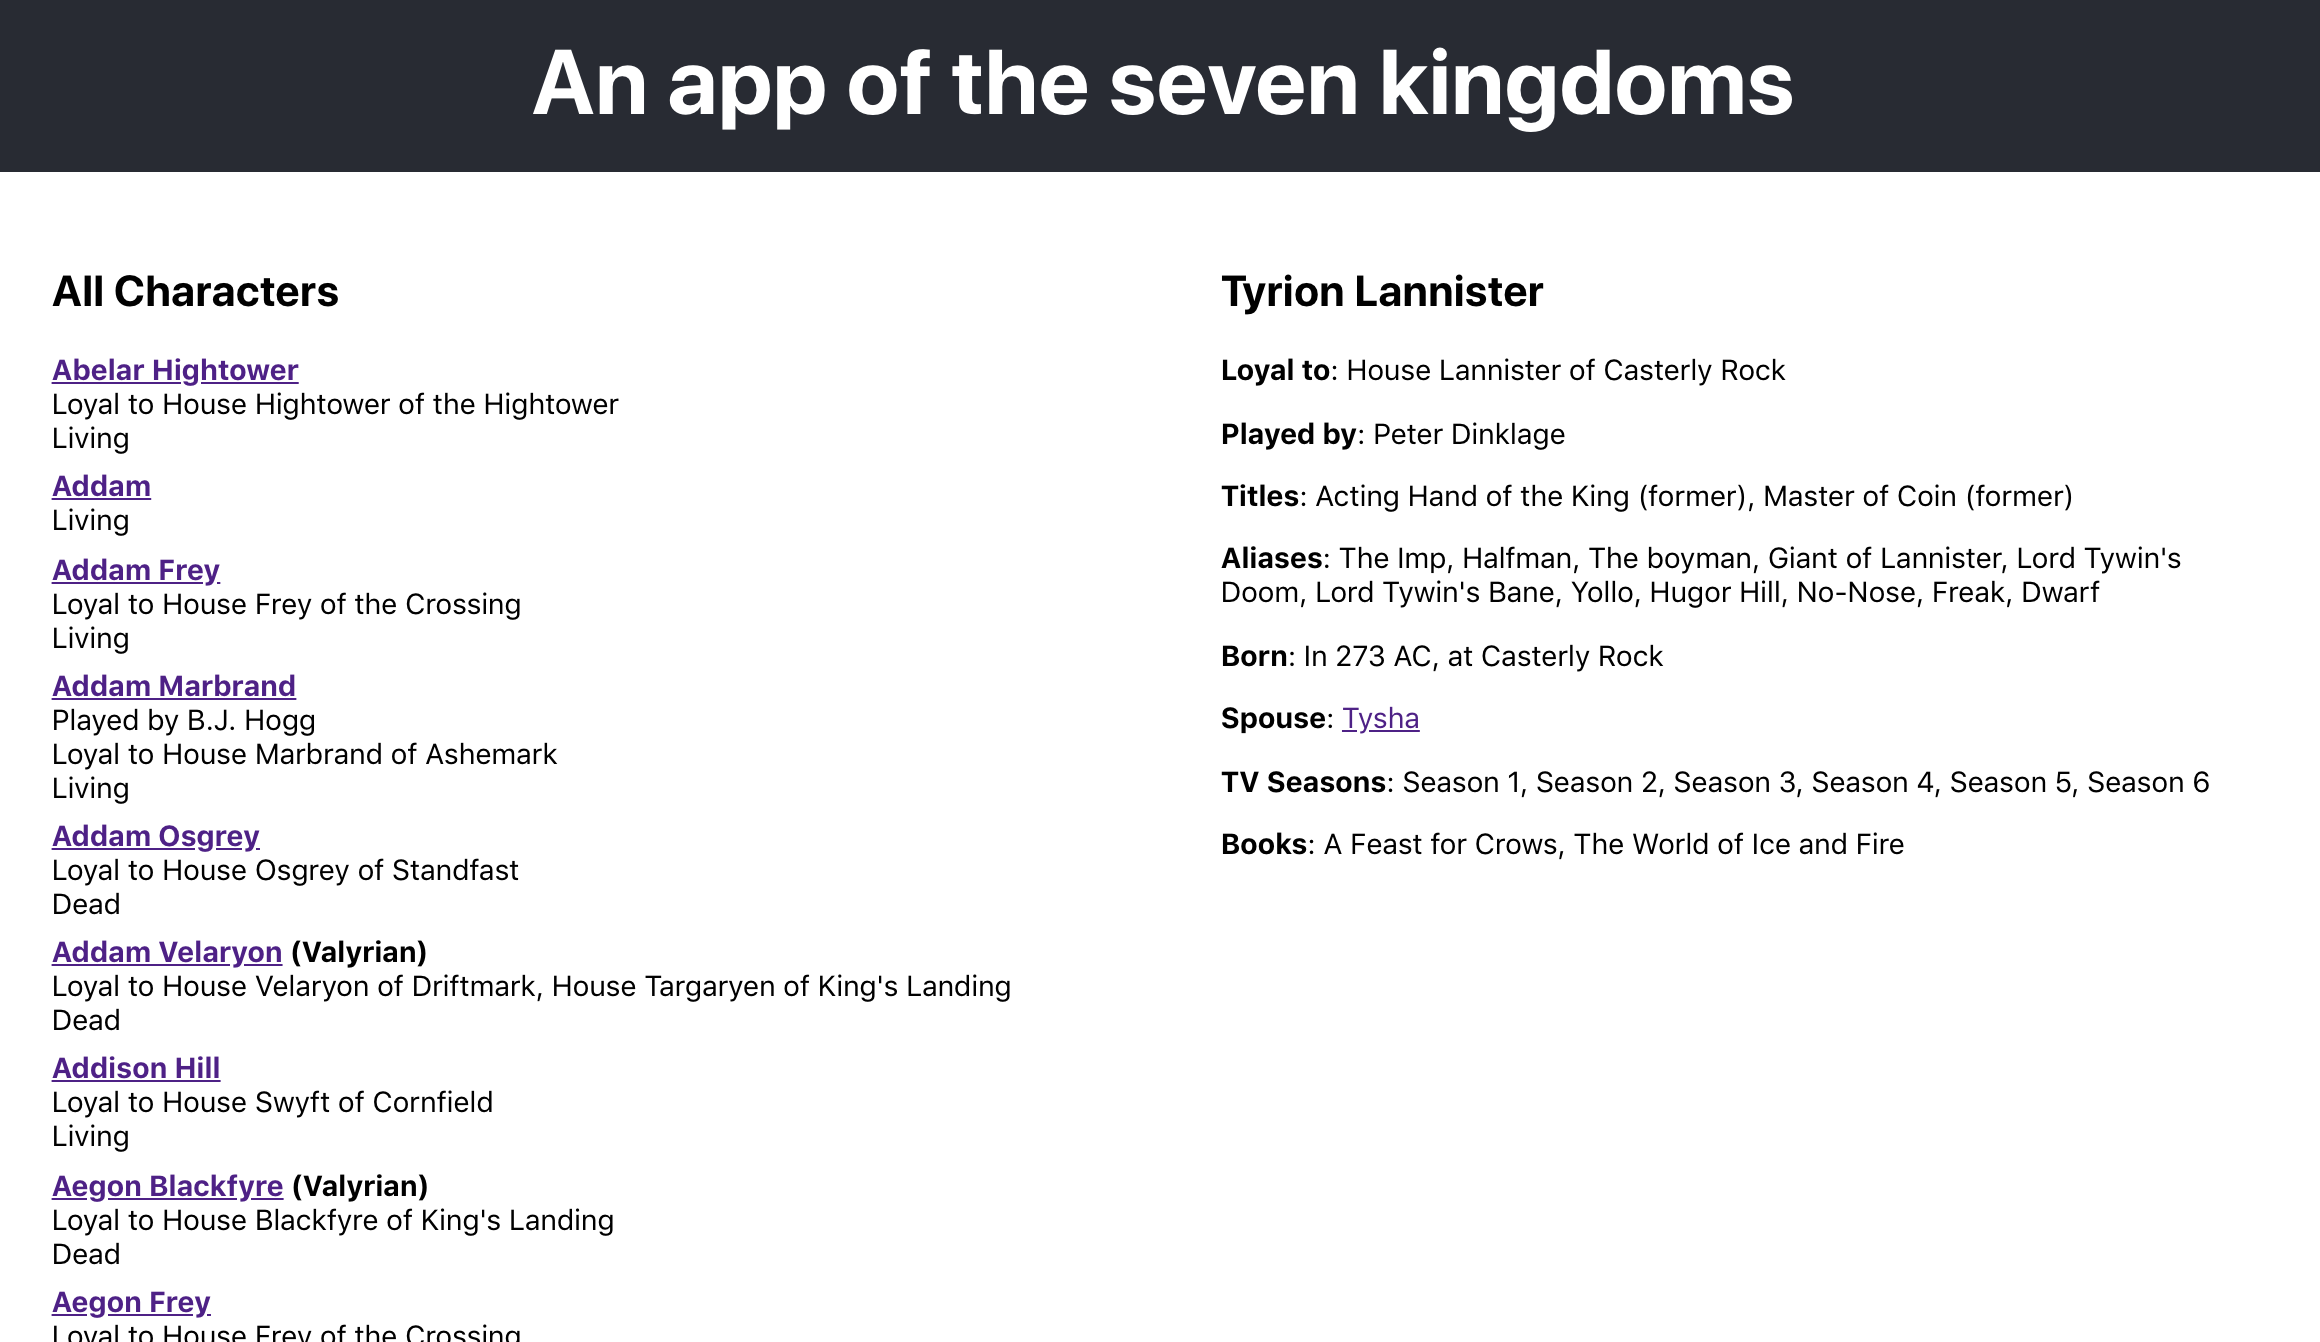 An app of the Seven Kingdoms